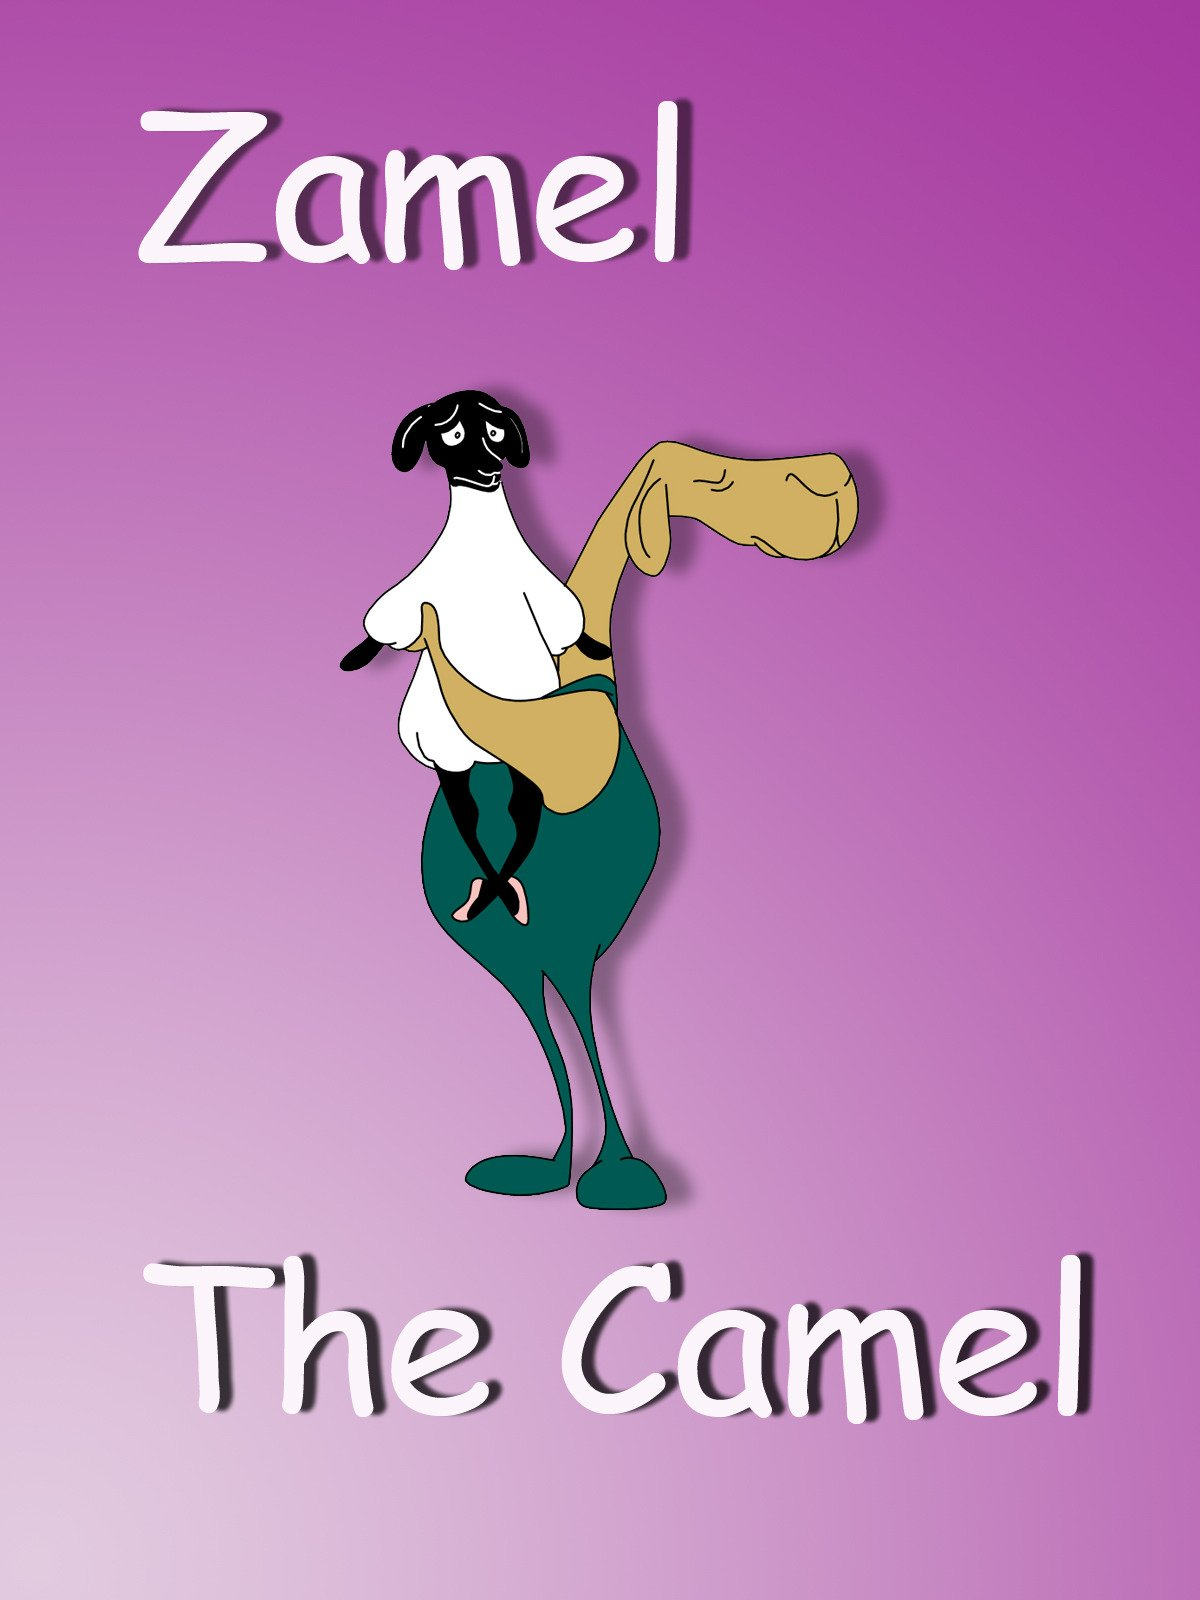 Zamel the Camel